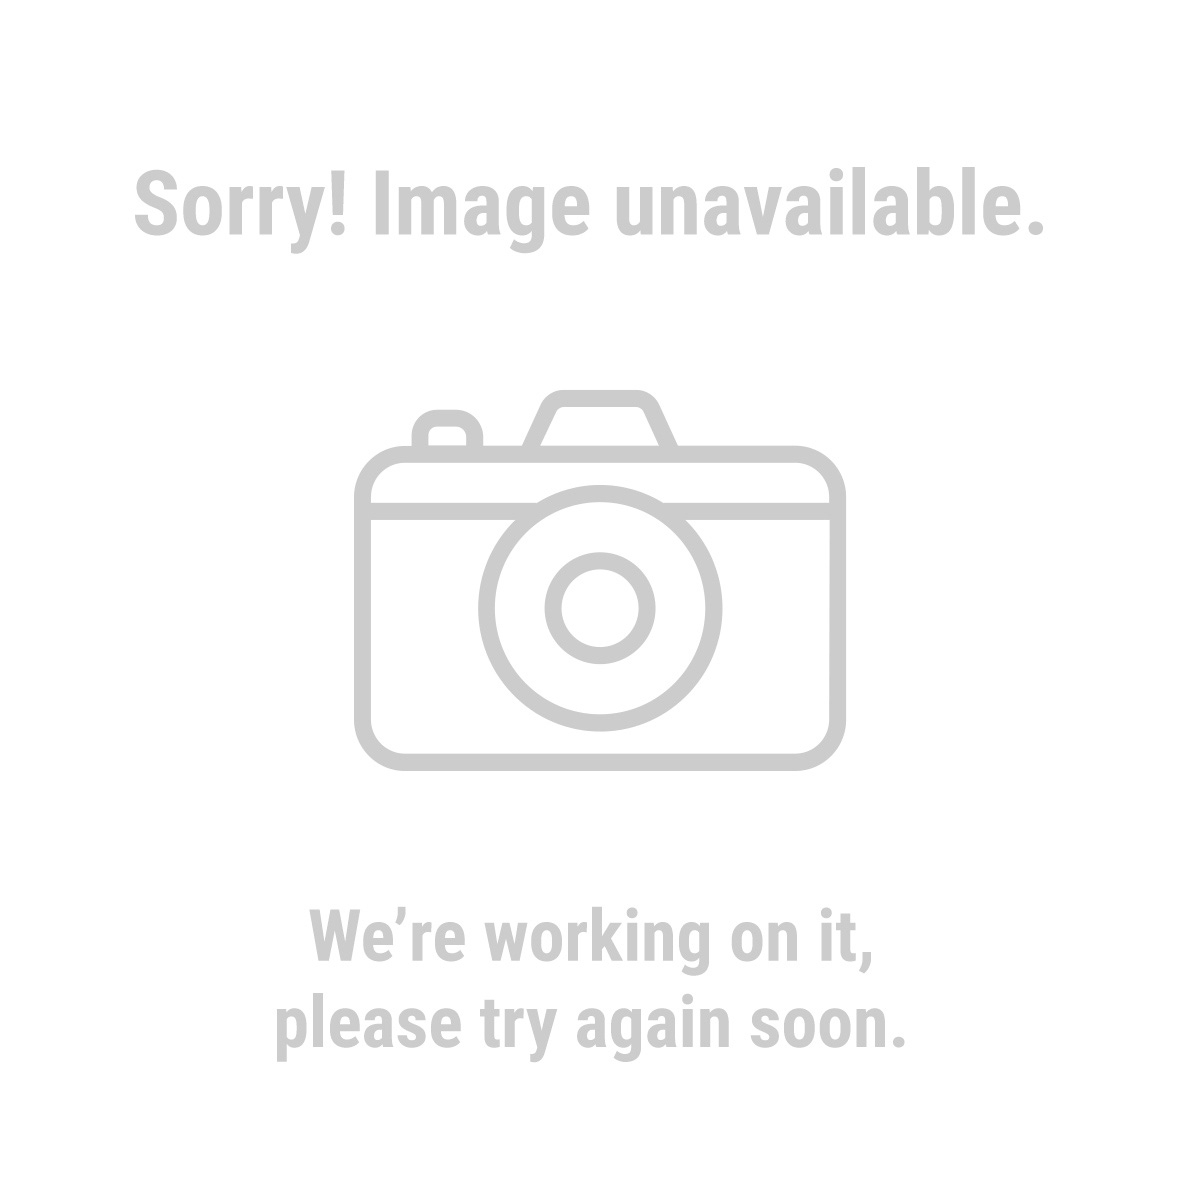 Diablo 62882 1/2 in. x 50 ft. Premium Rubber Air Hose